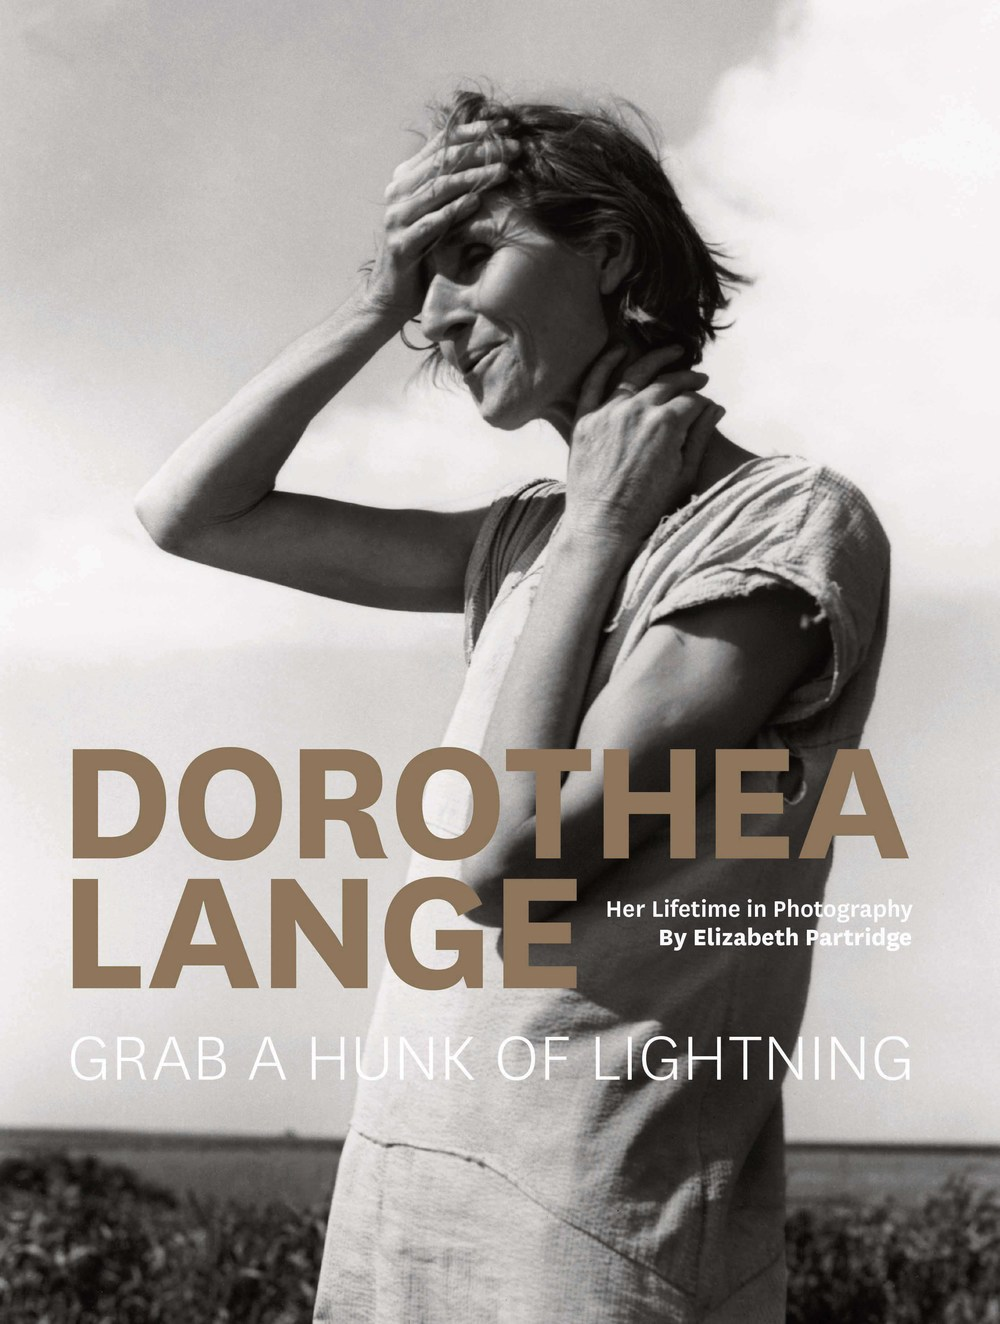 Dorothea Lange: Grab a Hunk of Lightning